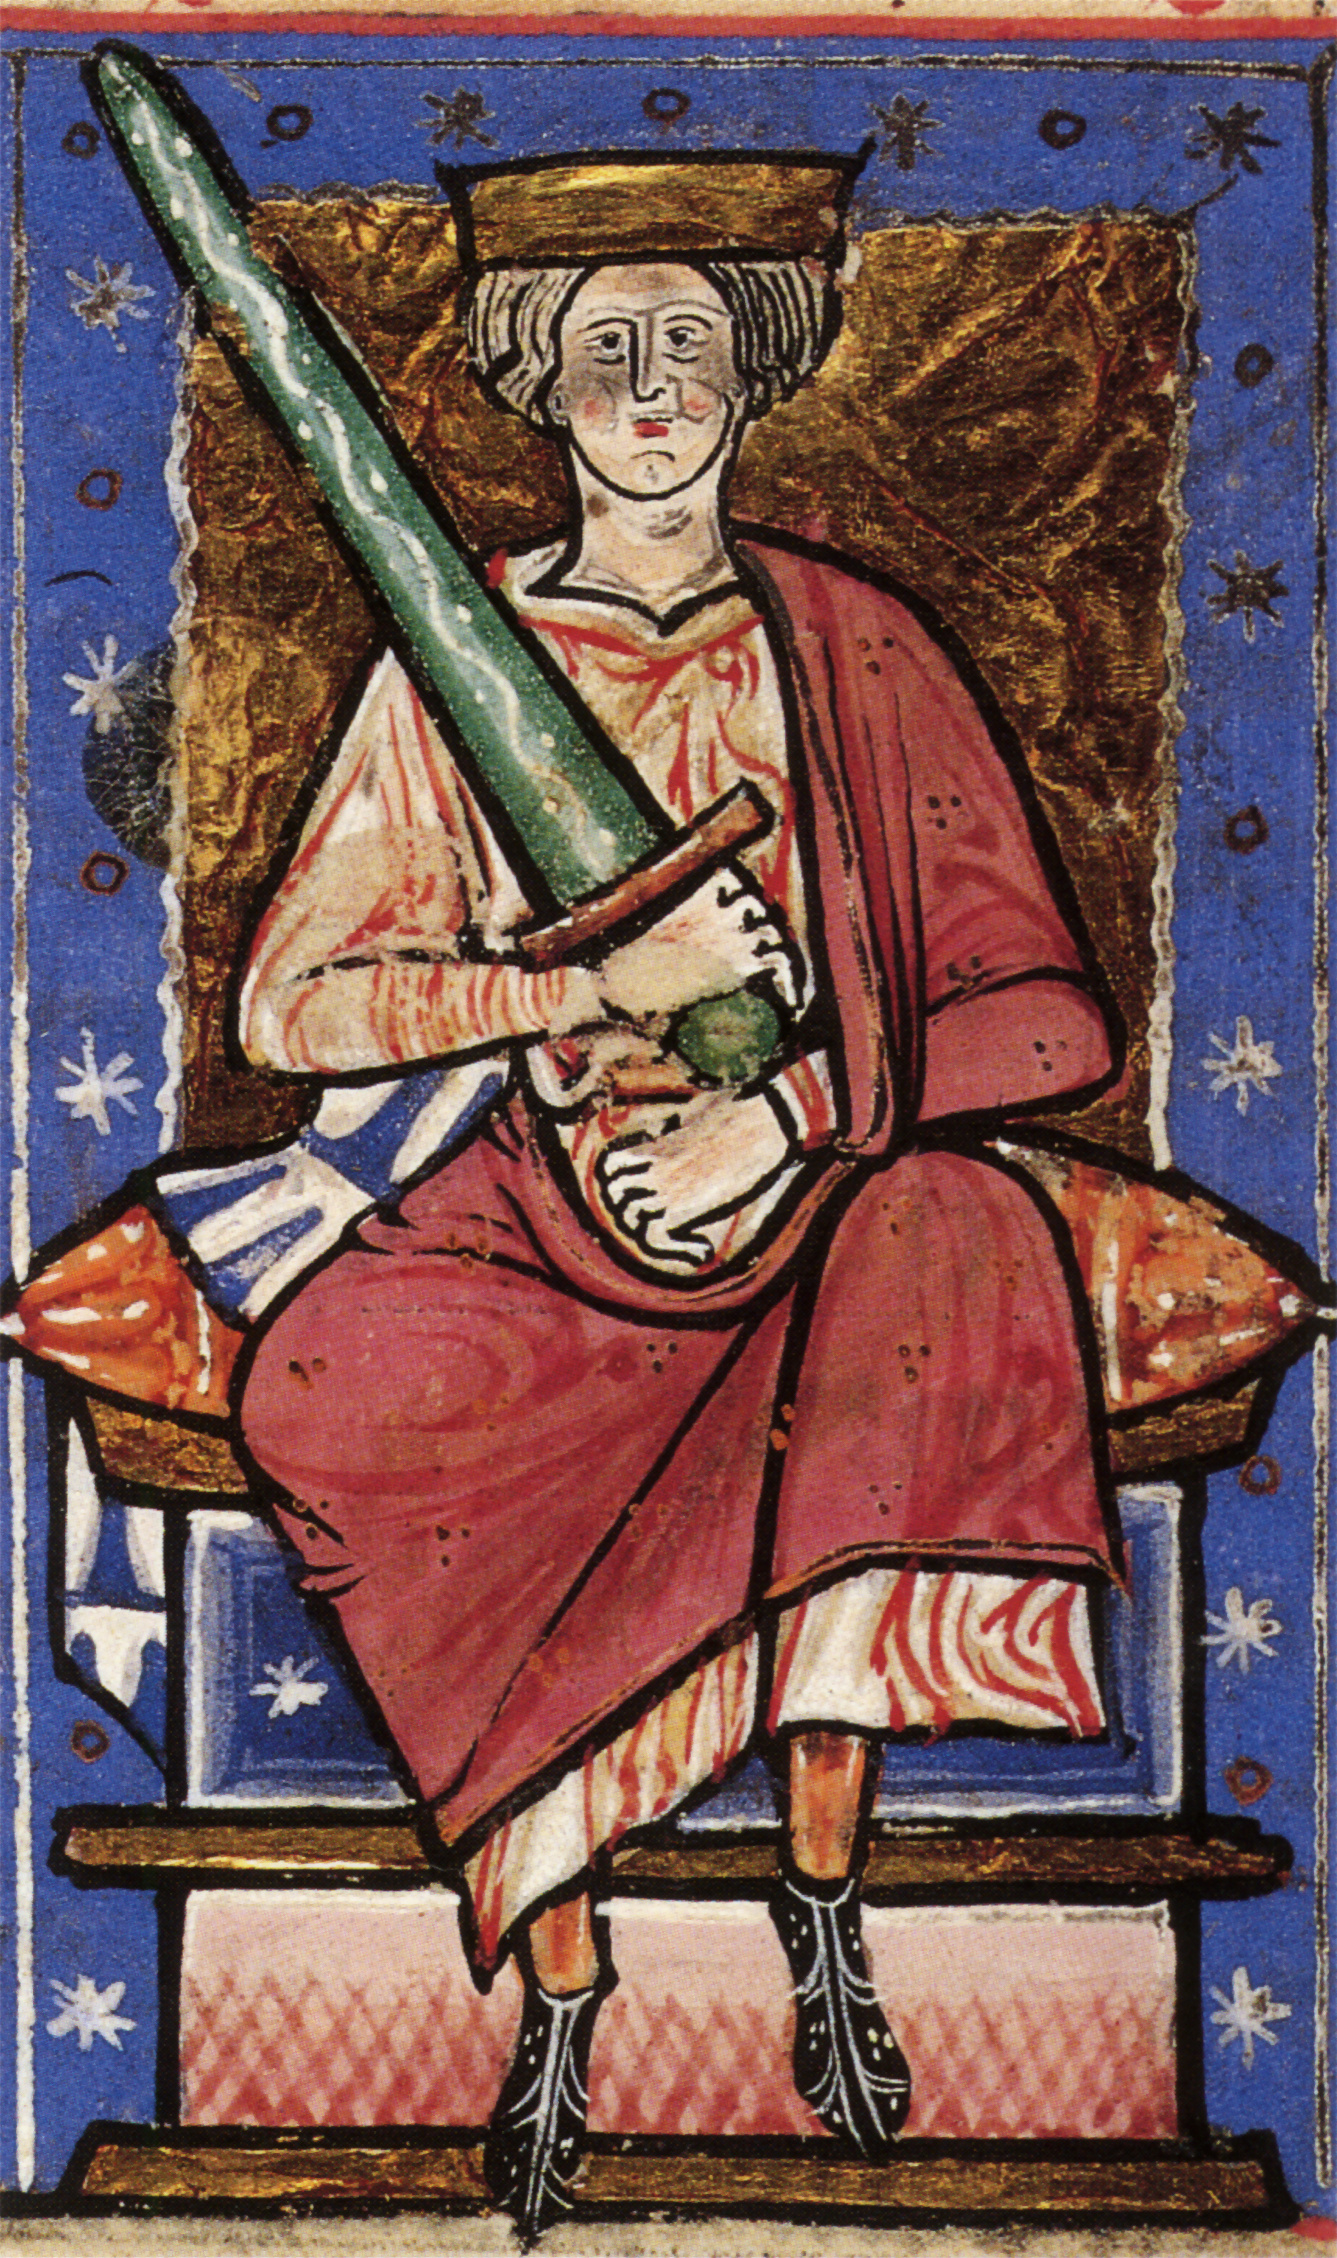 http://upload.wikimedia.org/wikipedia/commons/b/b3/Ethelred_the_Unready.jpg